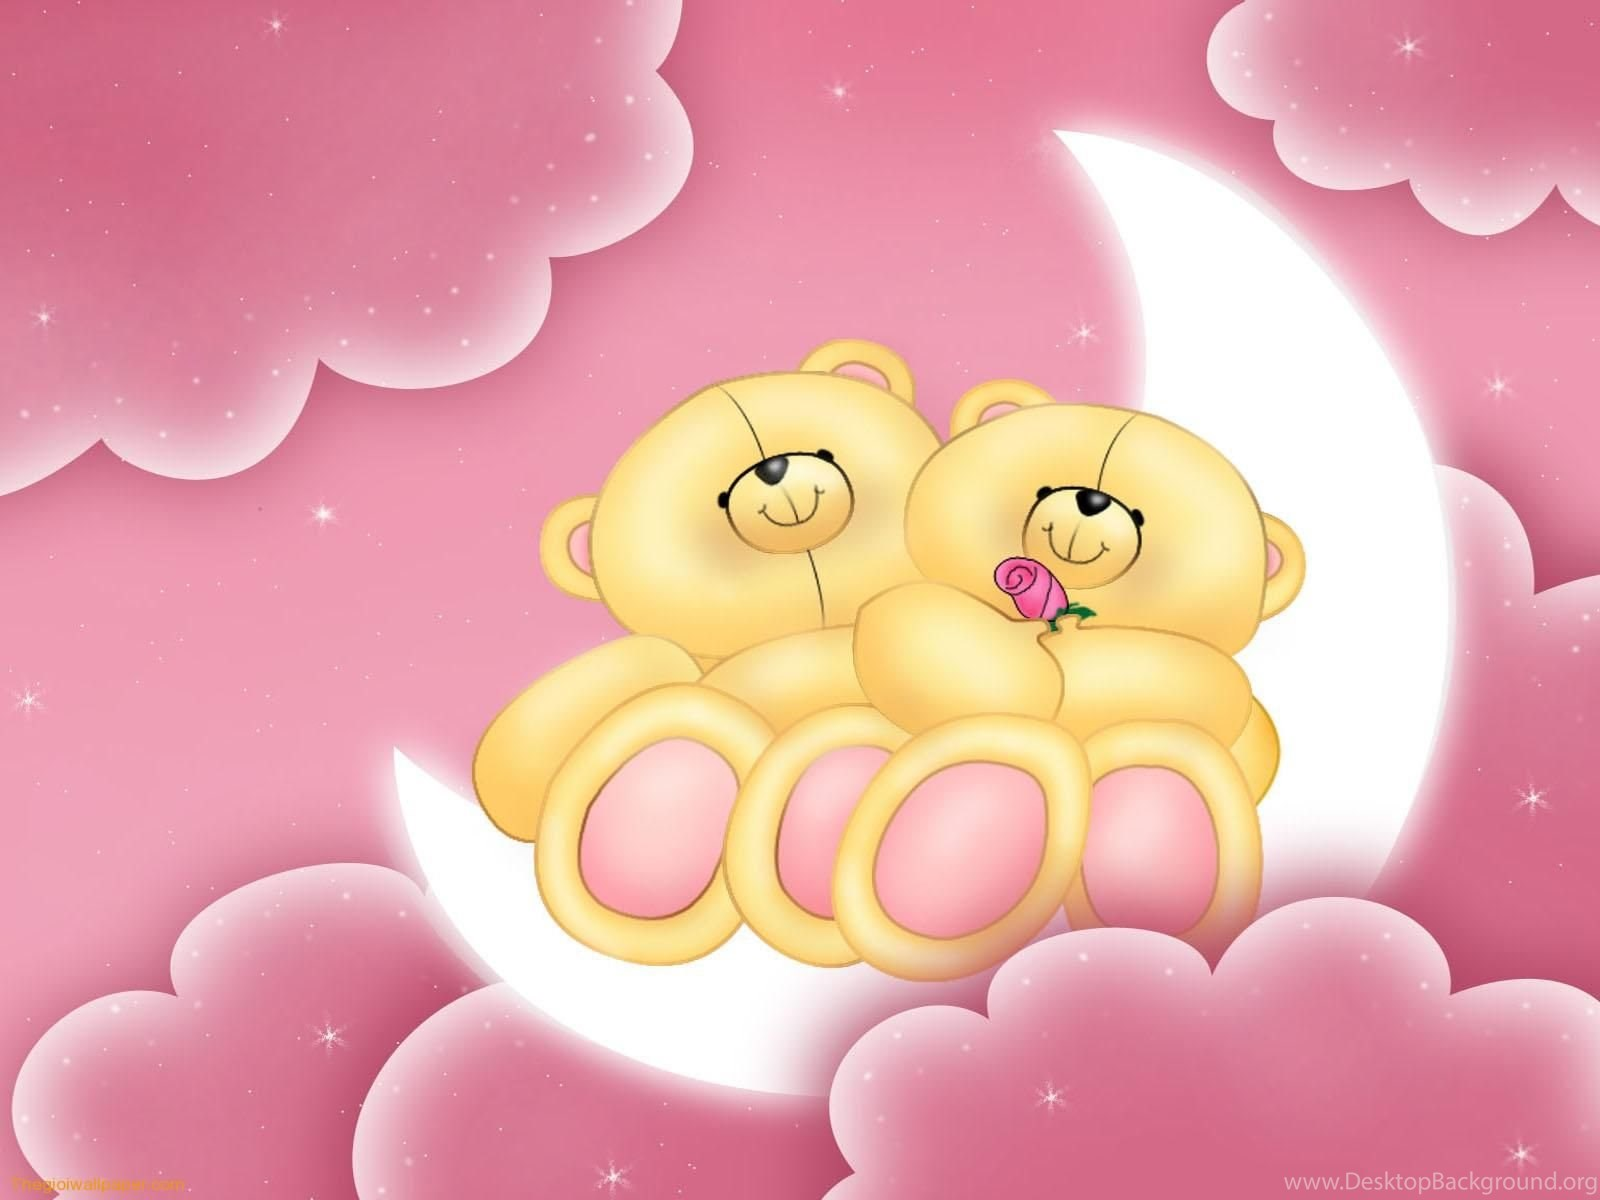 Cute Love Wallpapers Cute Wallpapers Mobile All Wallpapers New